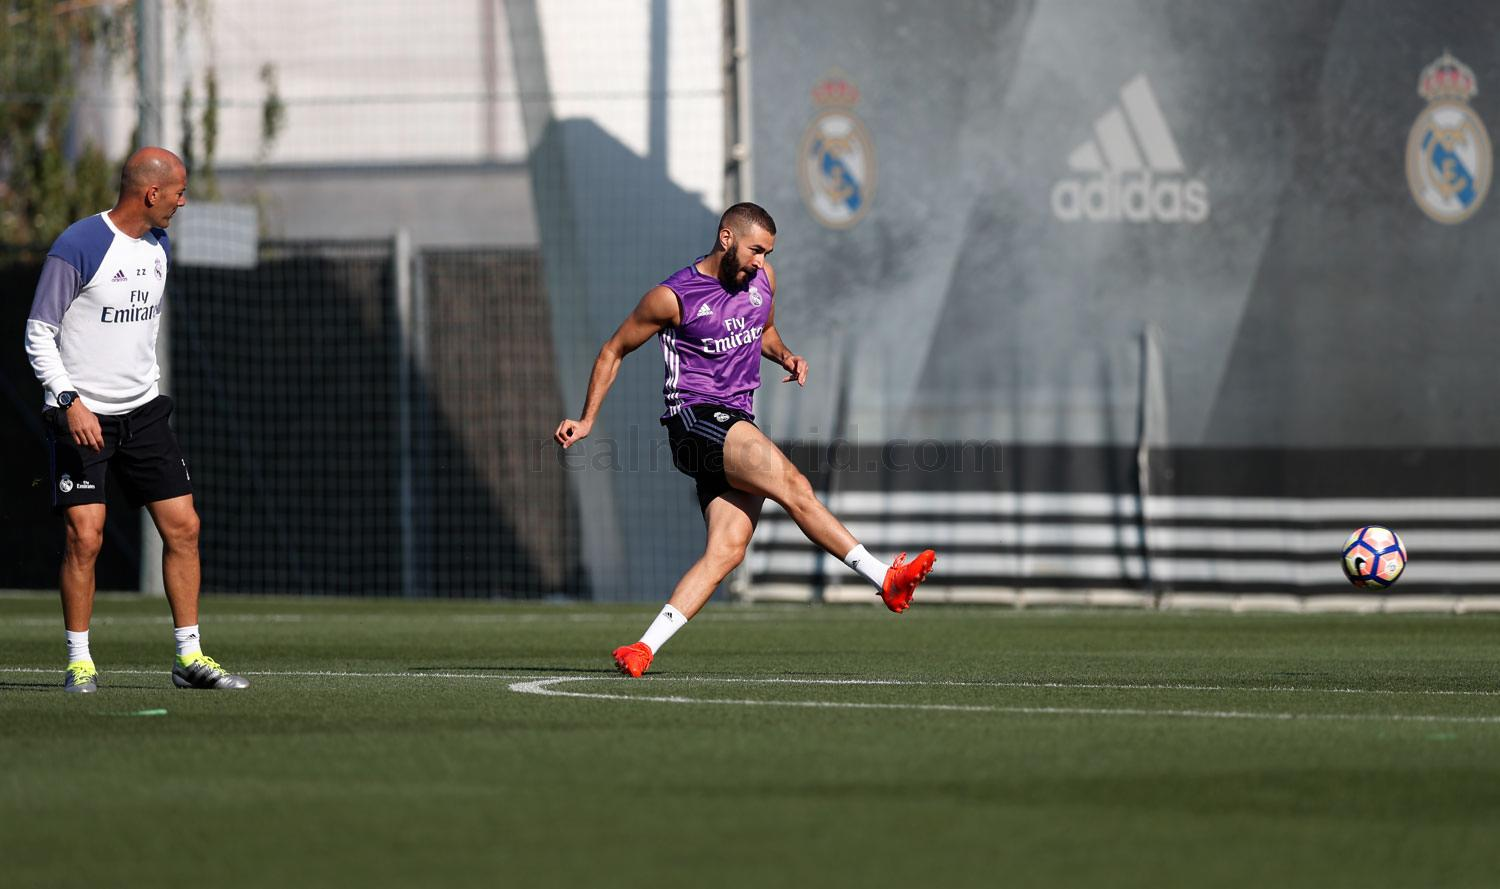 Real Madrid - Entrenamiento del Real Madrid - 02-09-2016